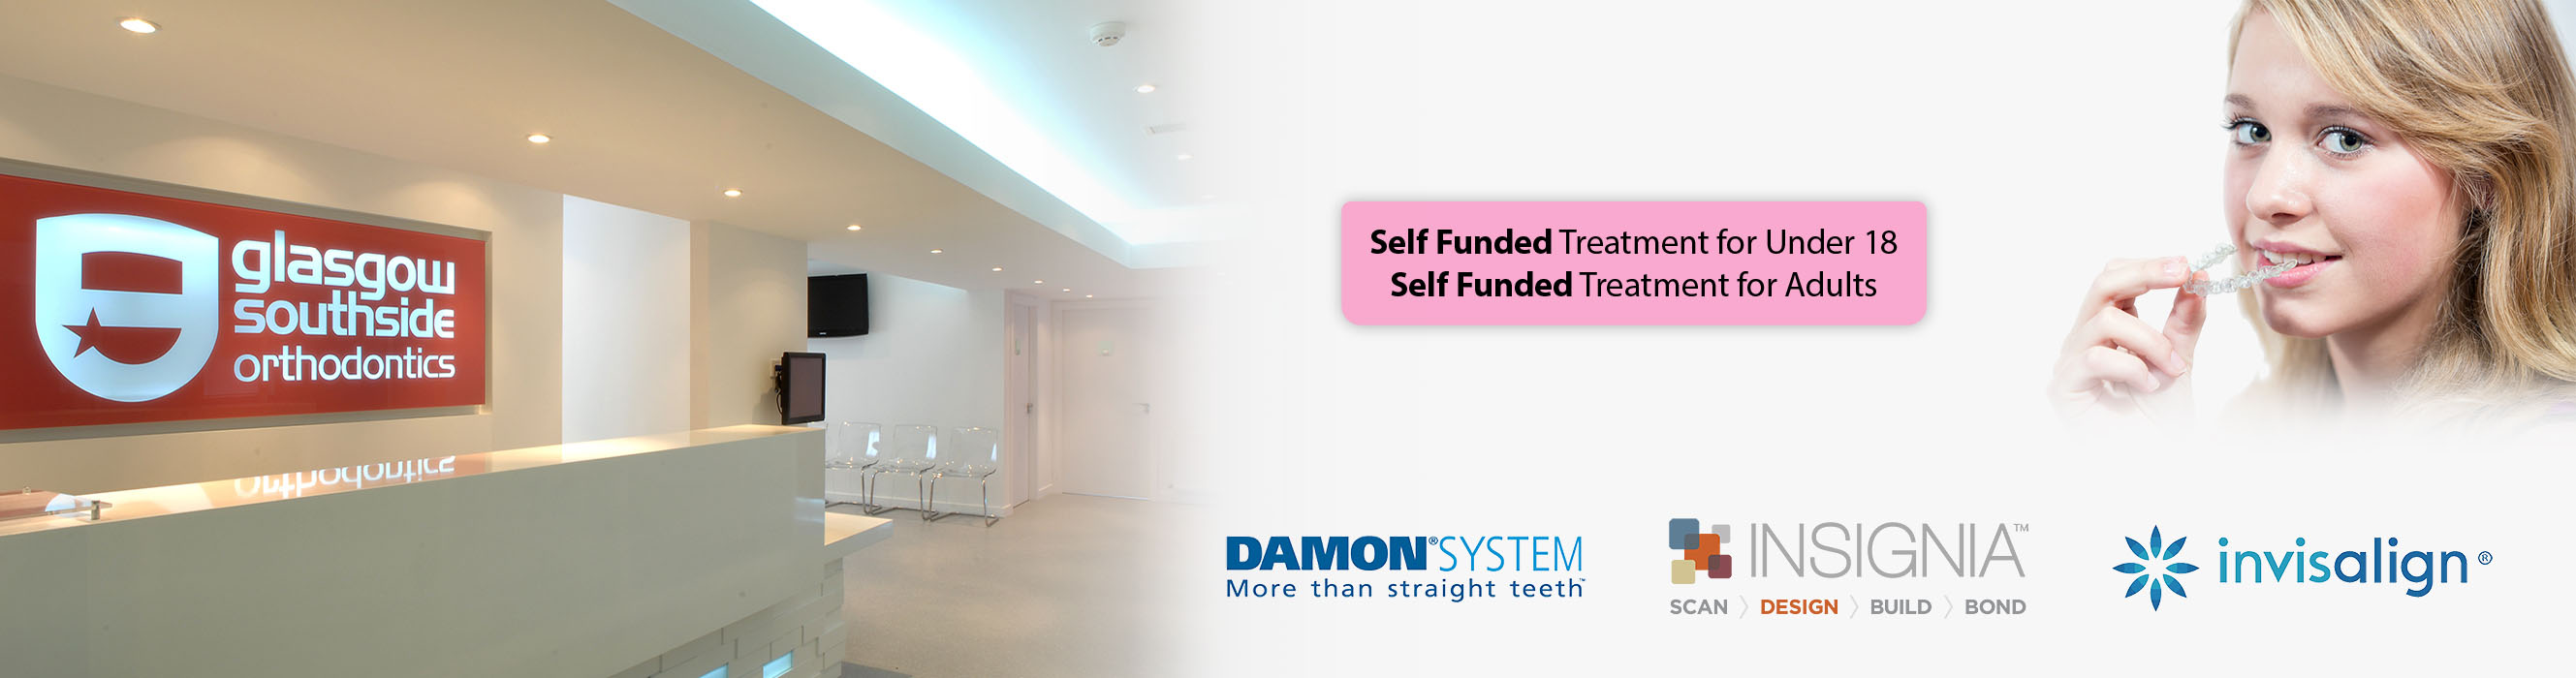 Self Funded Treatment